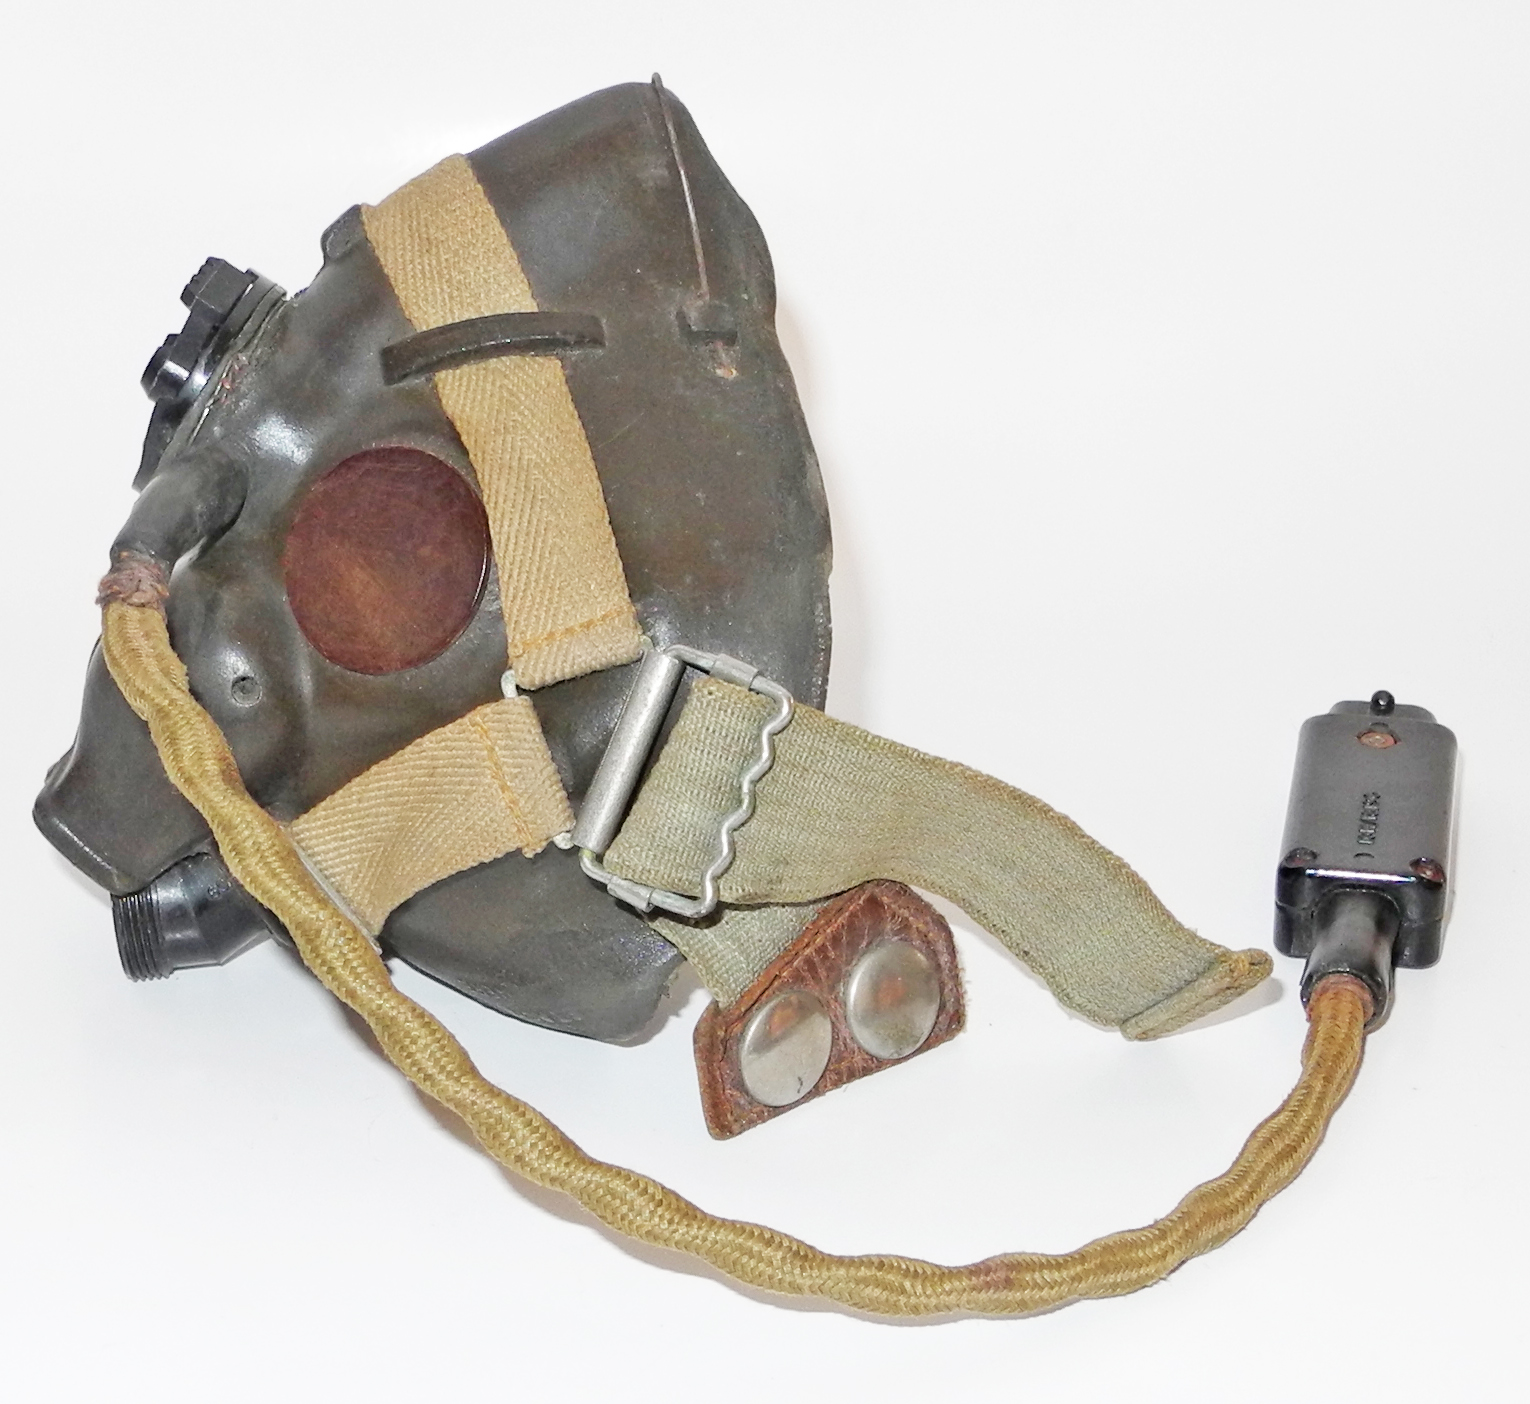 RAF H mask dated 3/4529